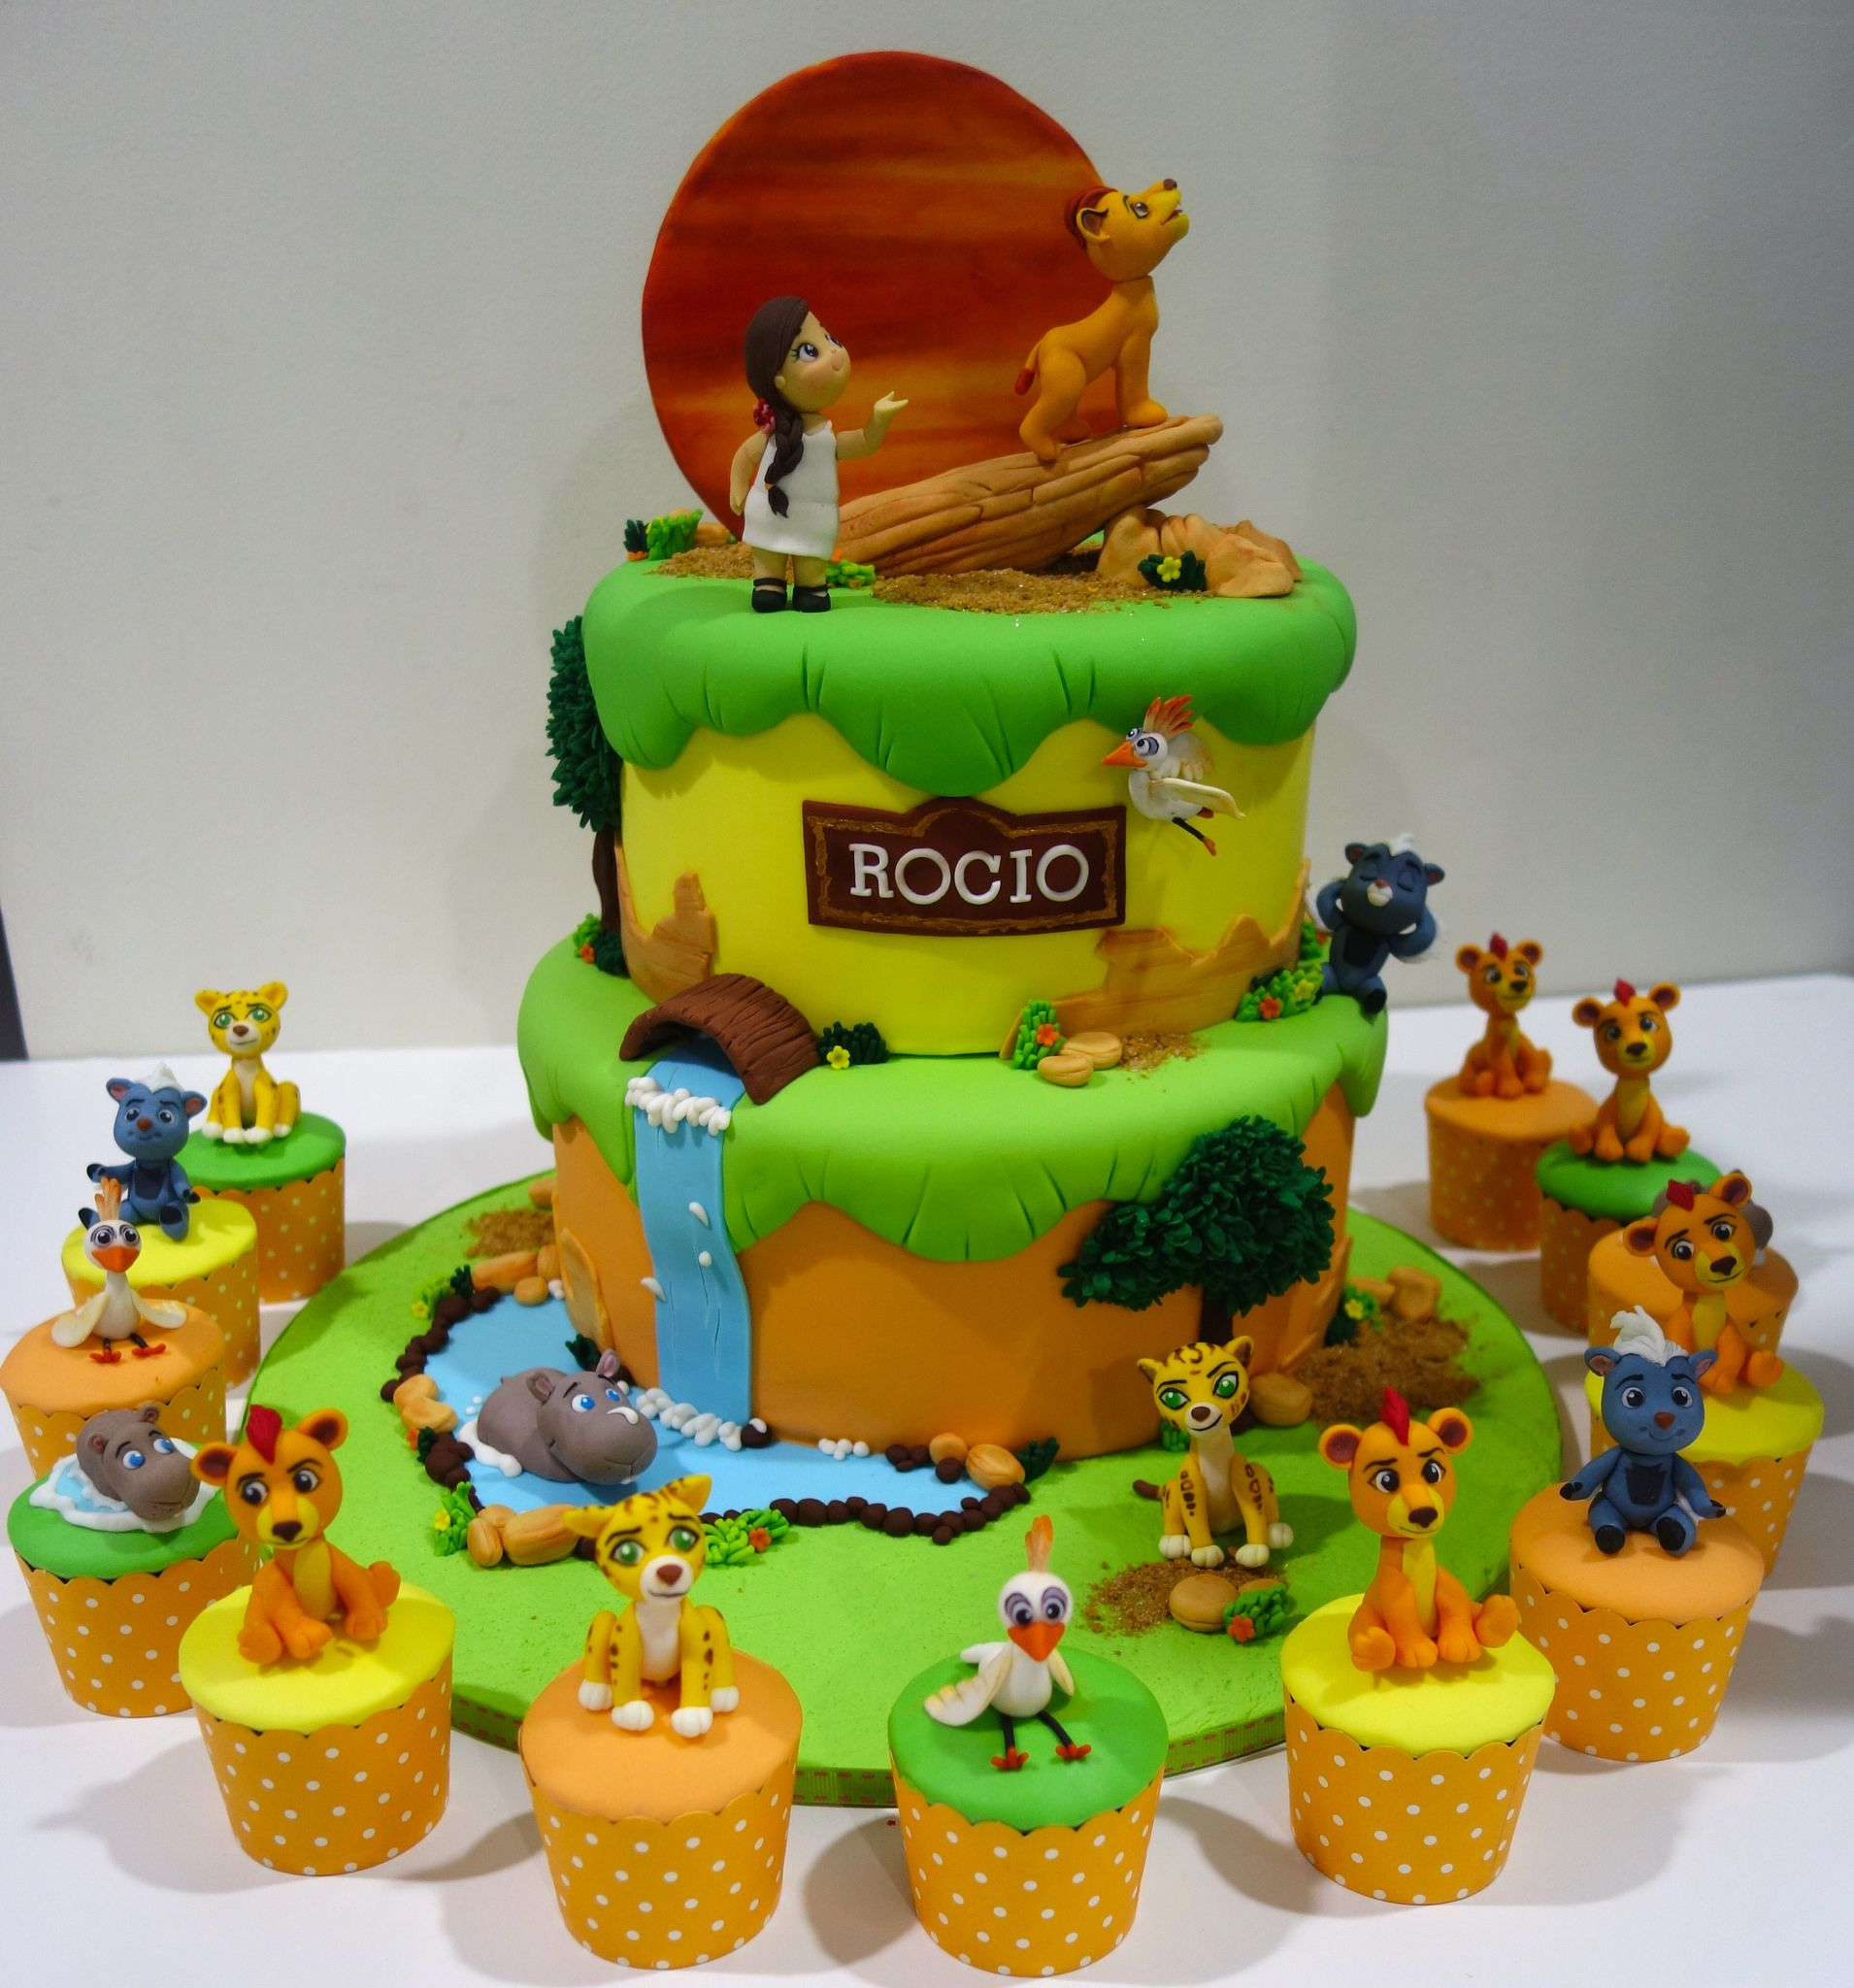 Https Flic Kr P Upqppr Lion Guard Cake And Cupcakes Lion